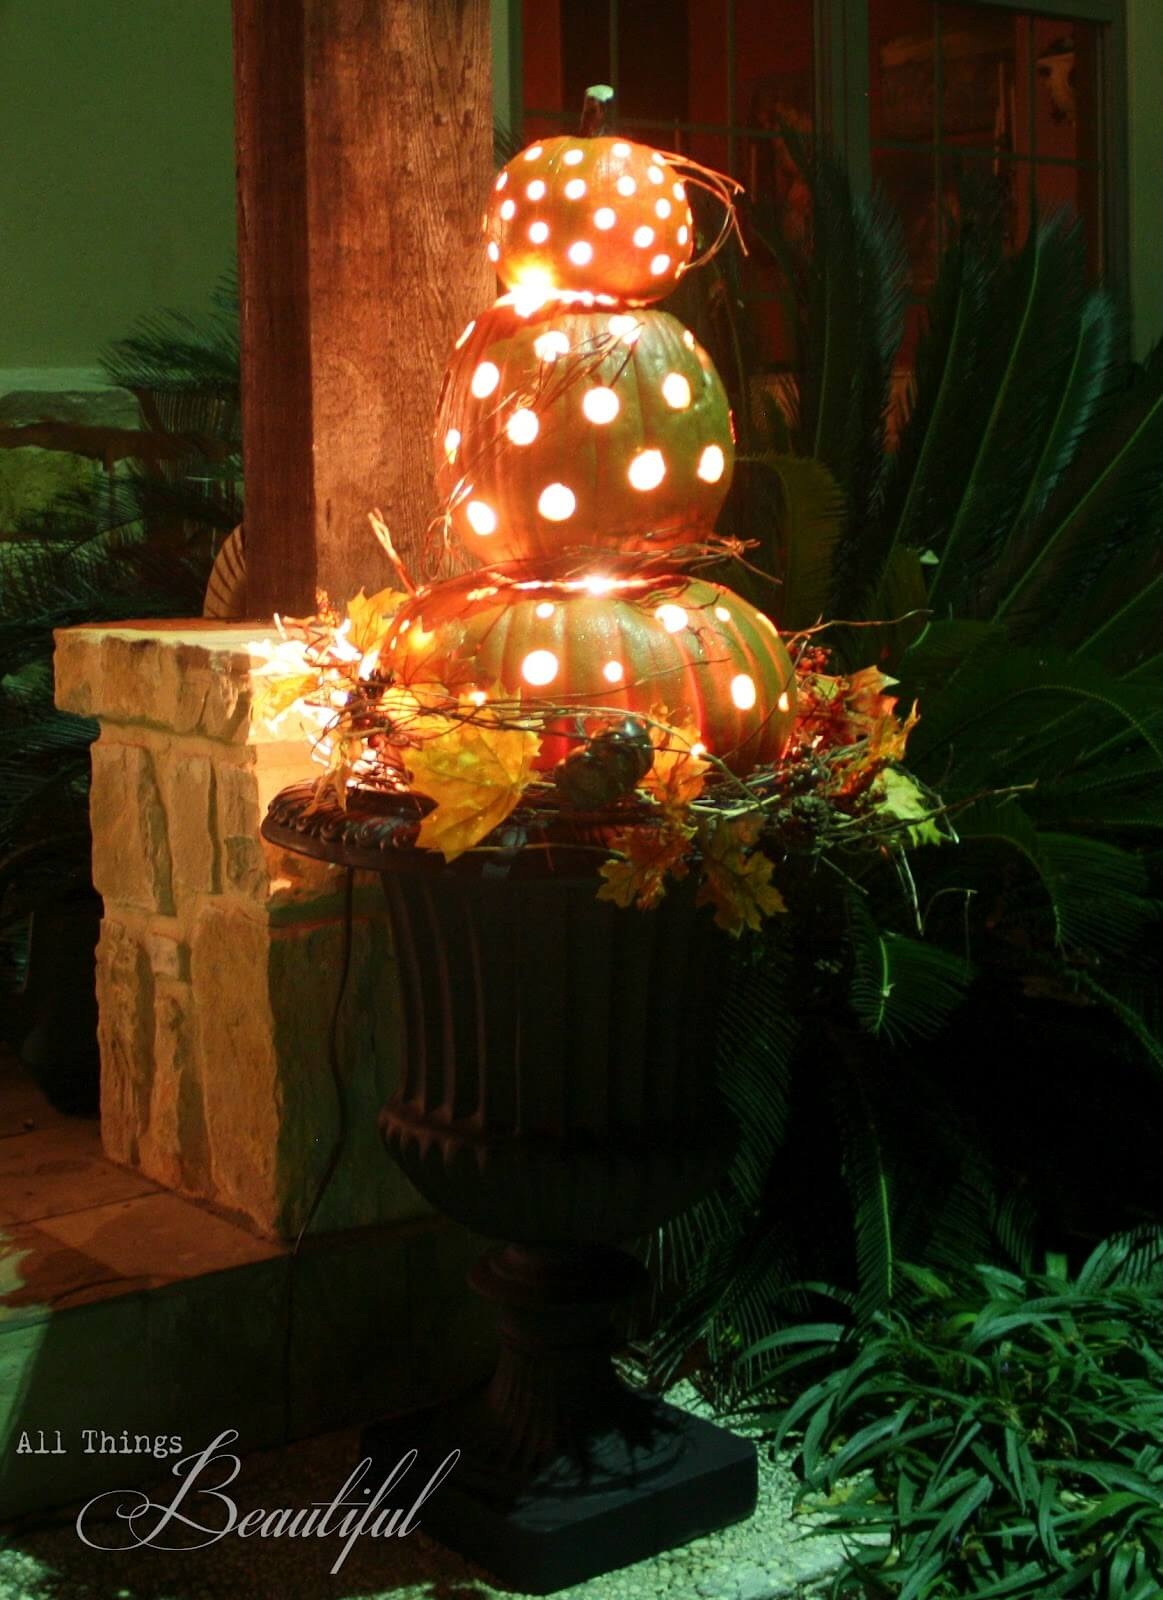 A Glowing Homage to Fall | Fall Porch Decoration Ideas | Porch decor on a budget